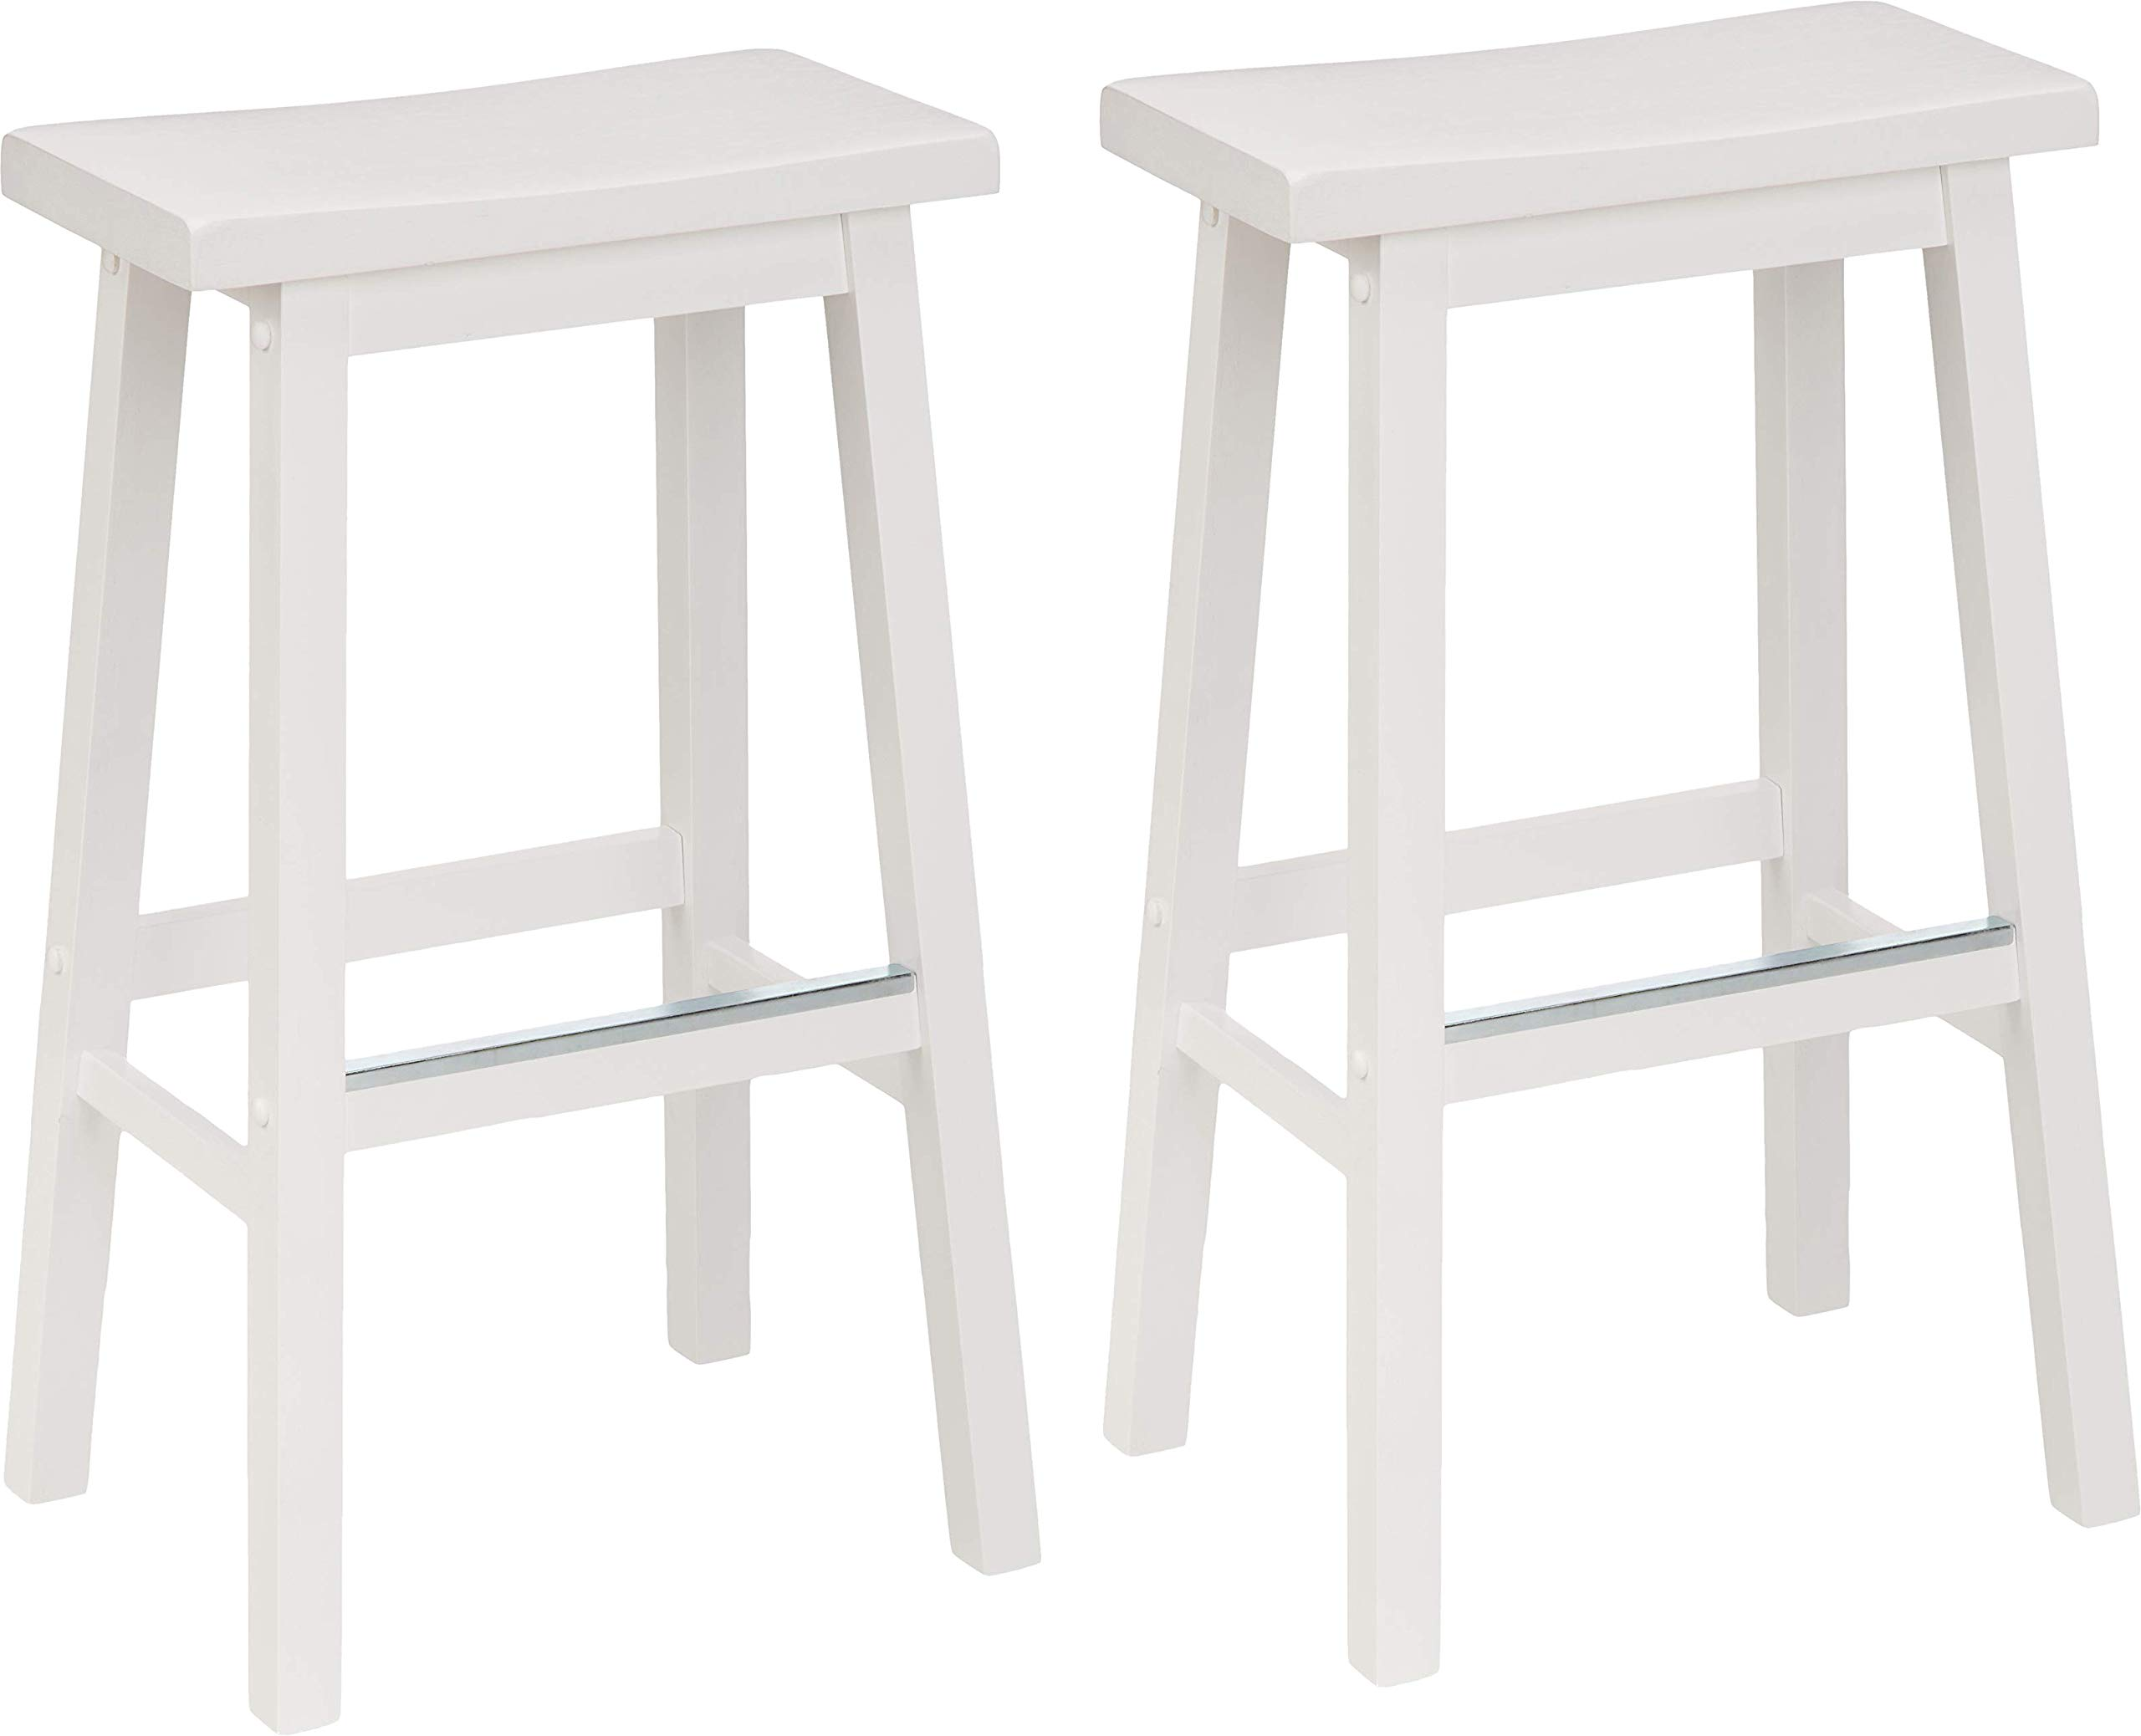 AmazonBasics Classic Solid Wood Saddle-Seat Kitchen Counter Stool with Foot Plate 29 Inch, White, Set of 2 by AmazonBasics